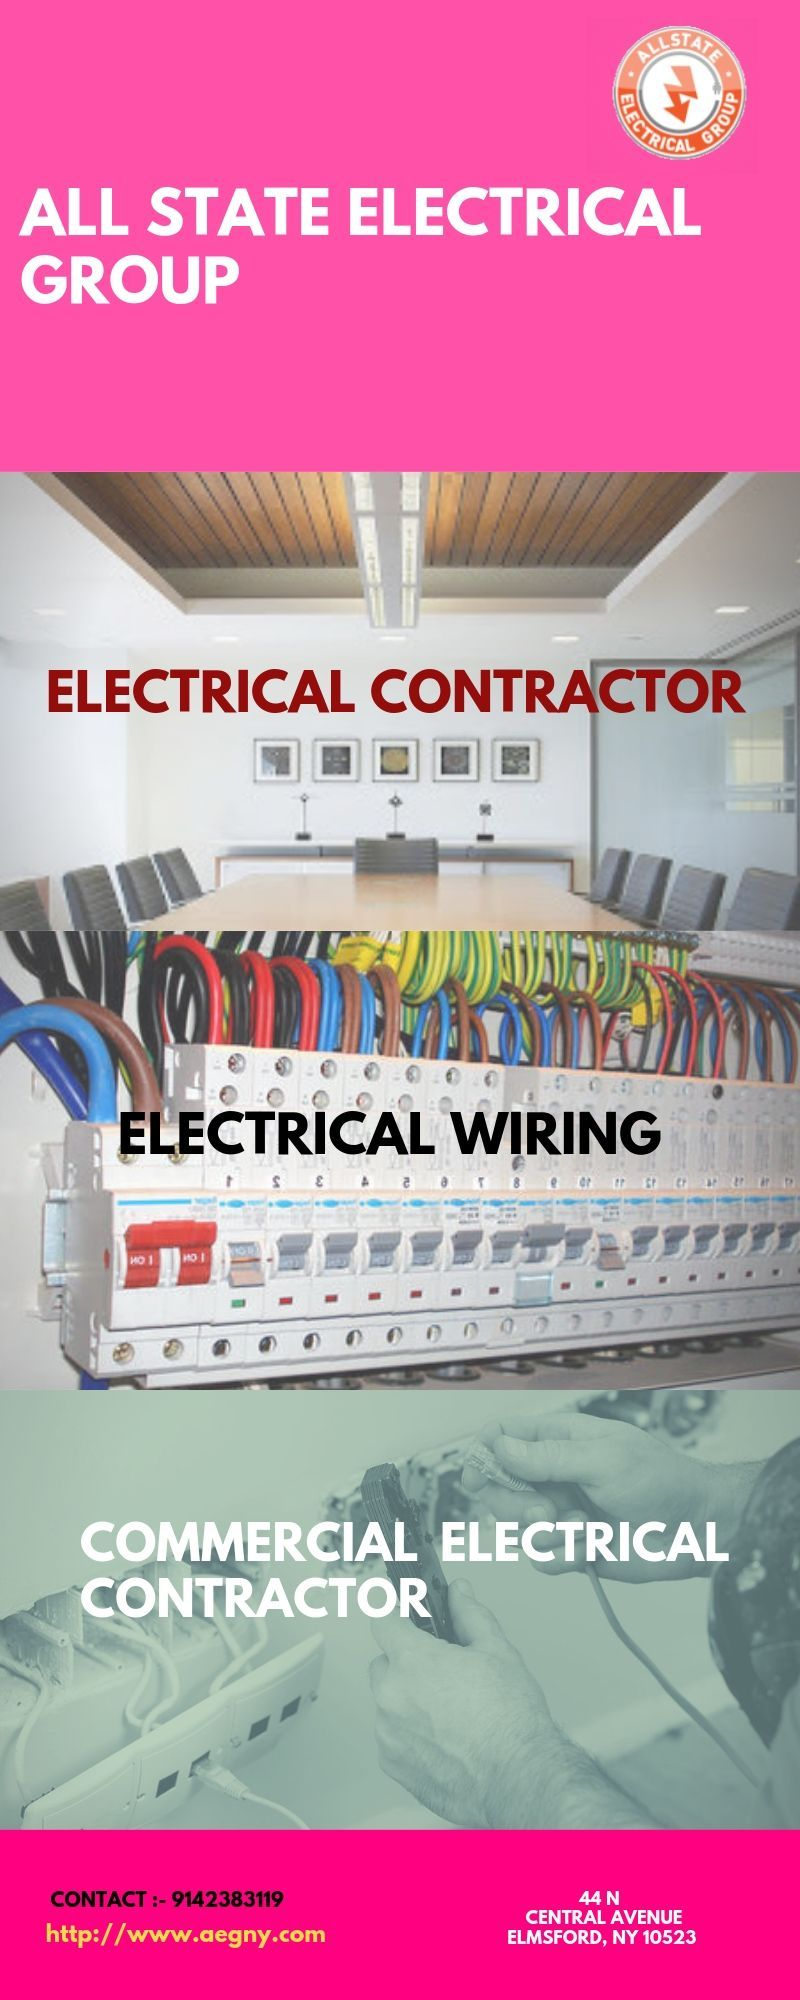 All-State Electrical Group Provides The Best Commercial ... on